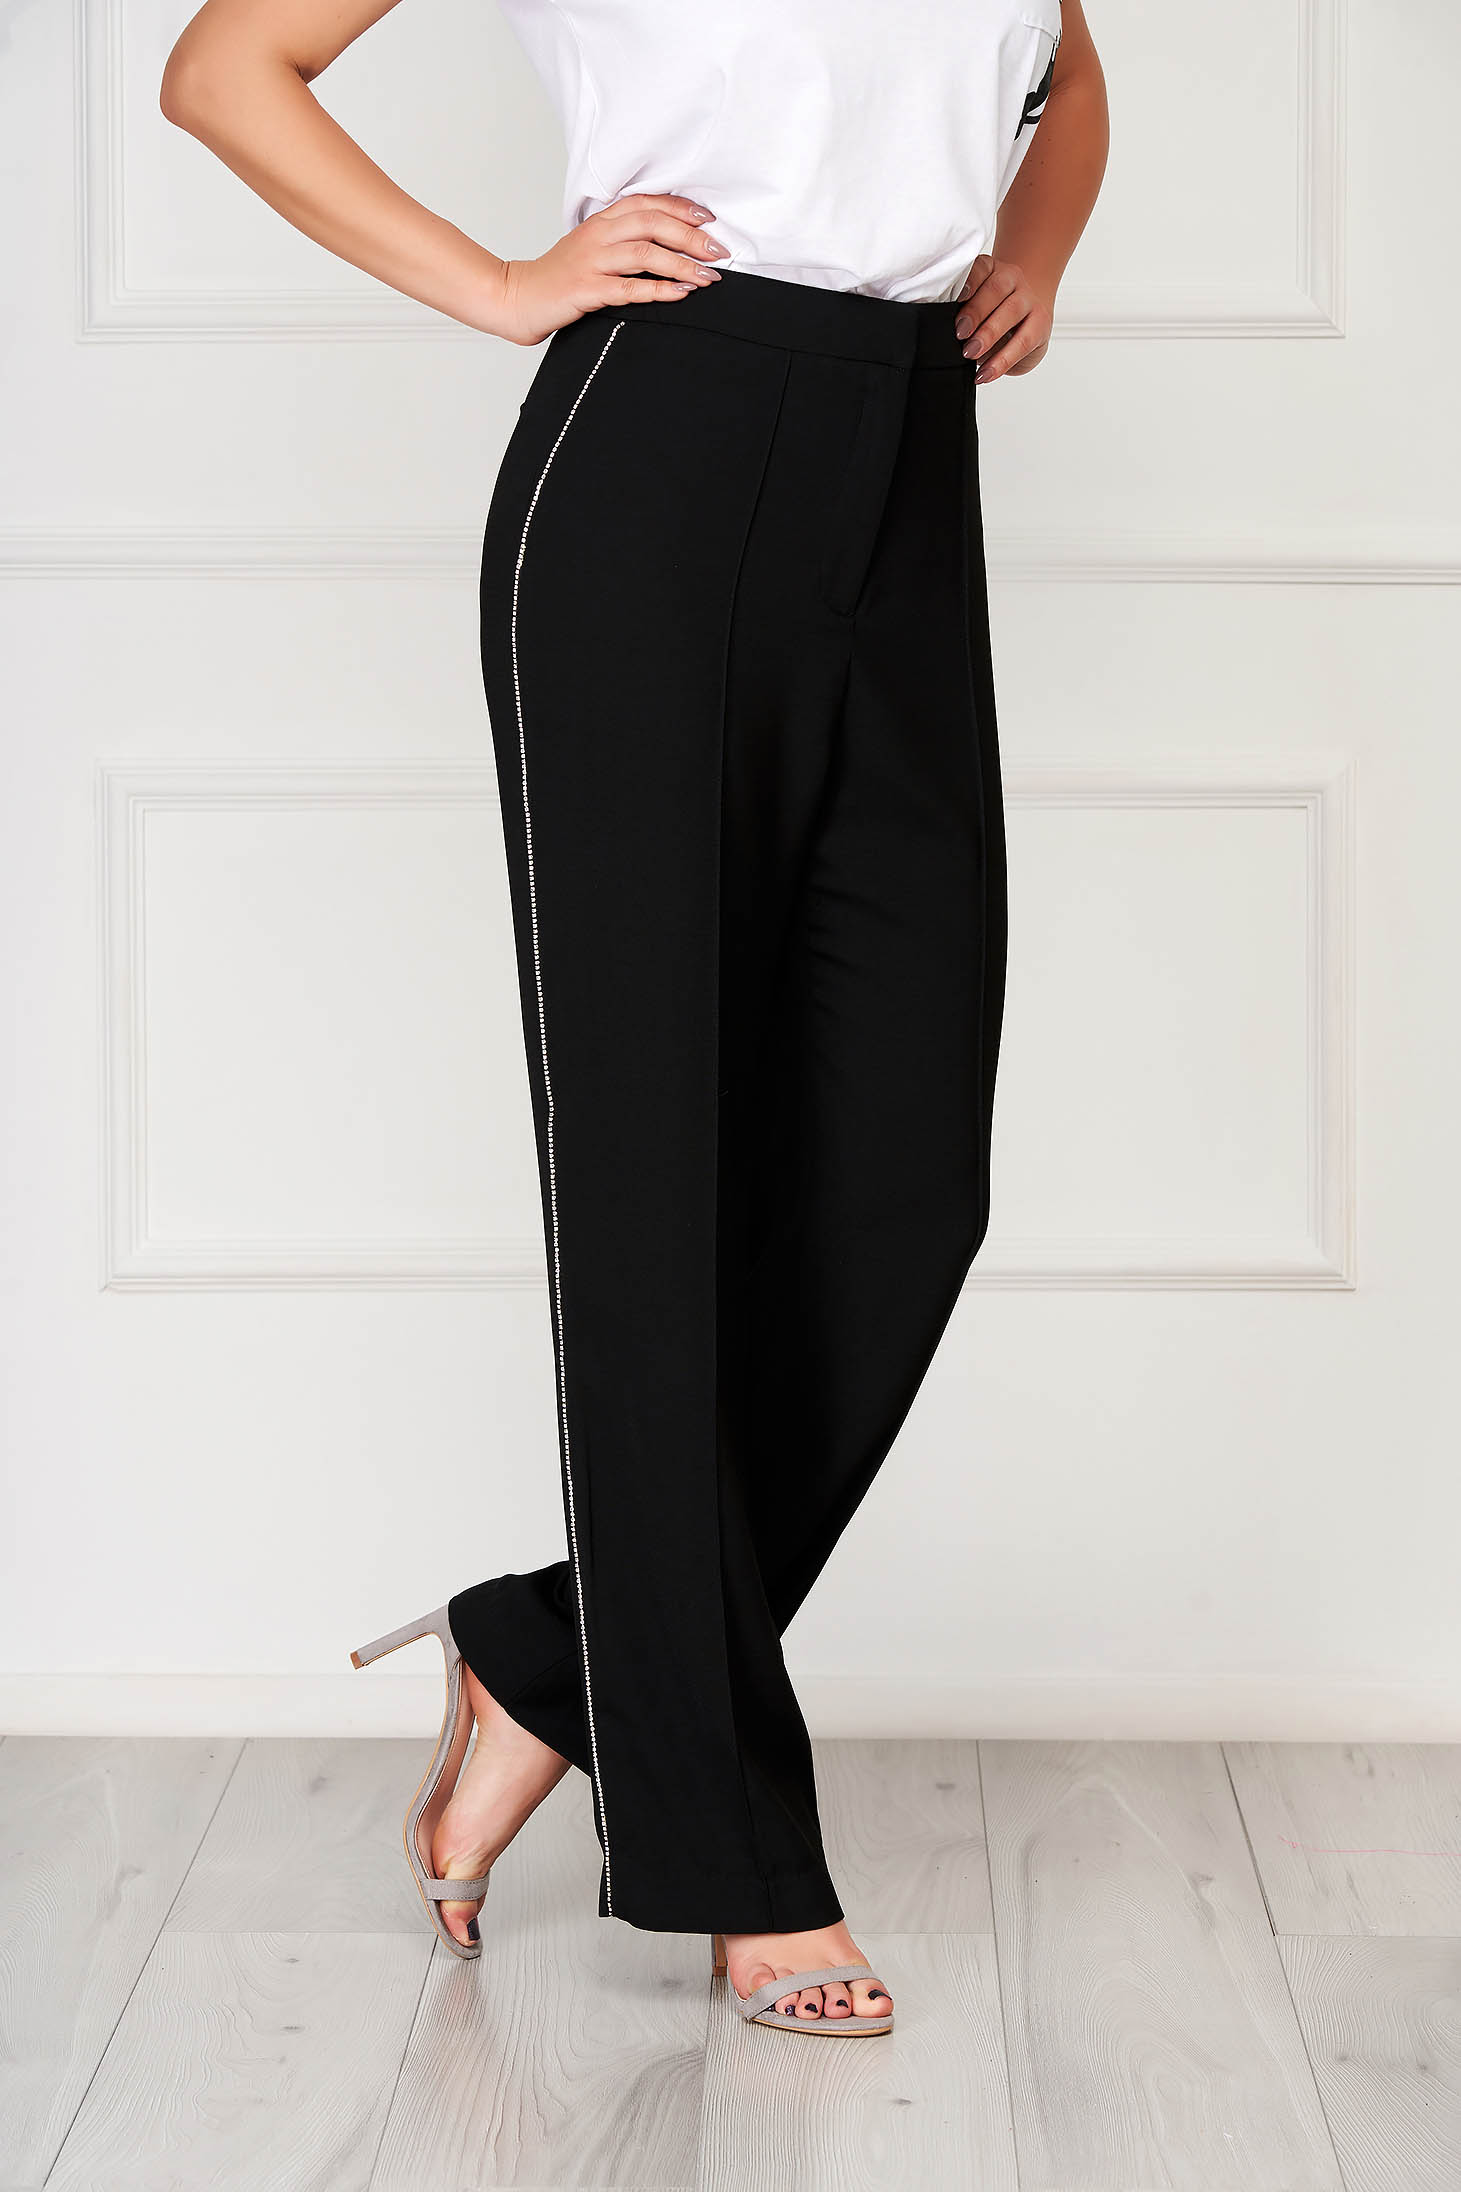 Black trousers elegant high waisted with crystal embellished details